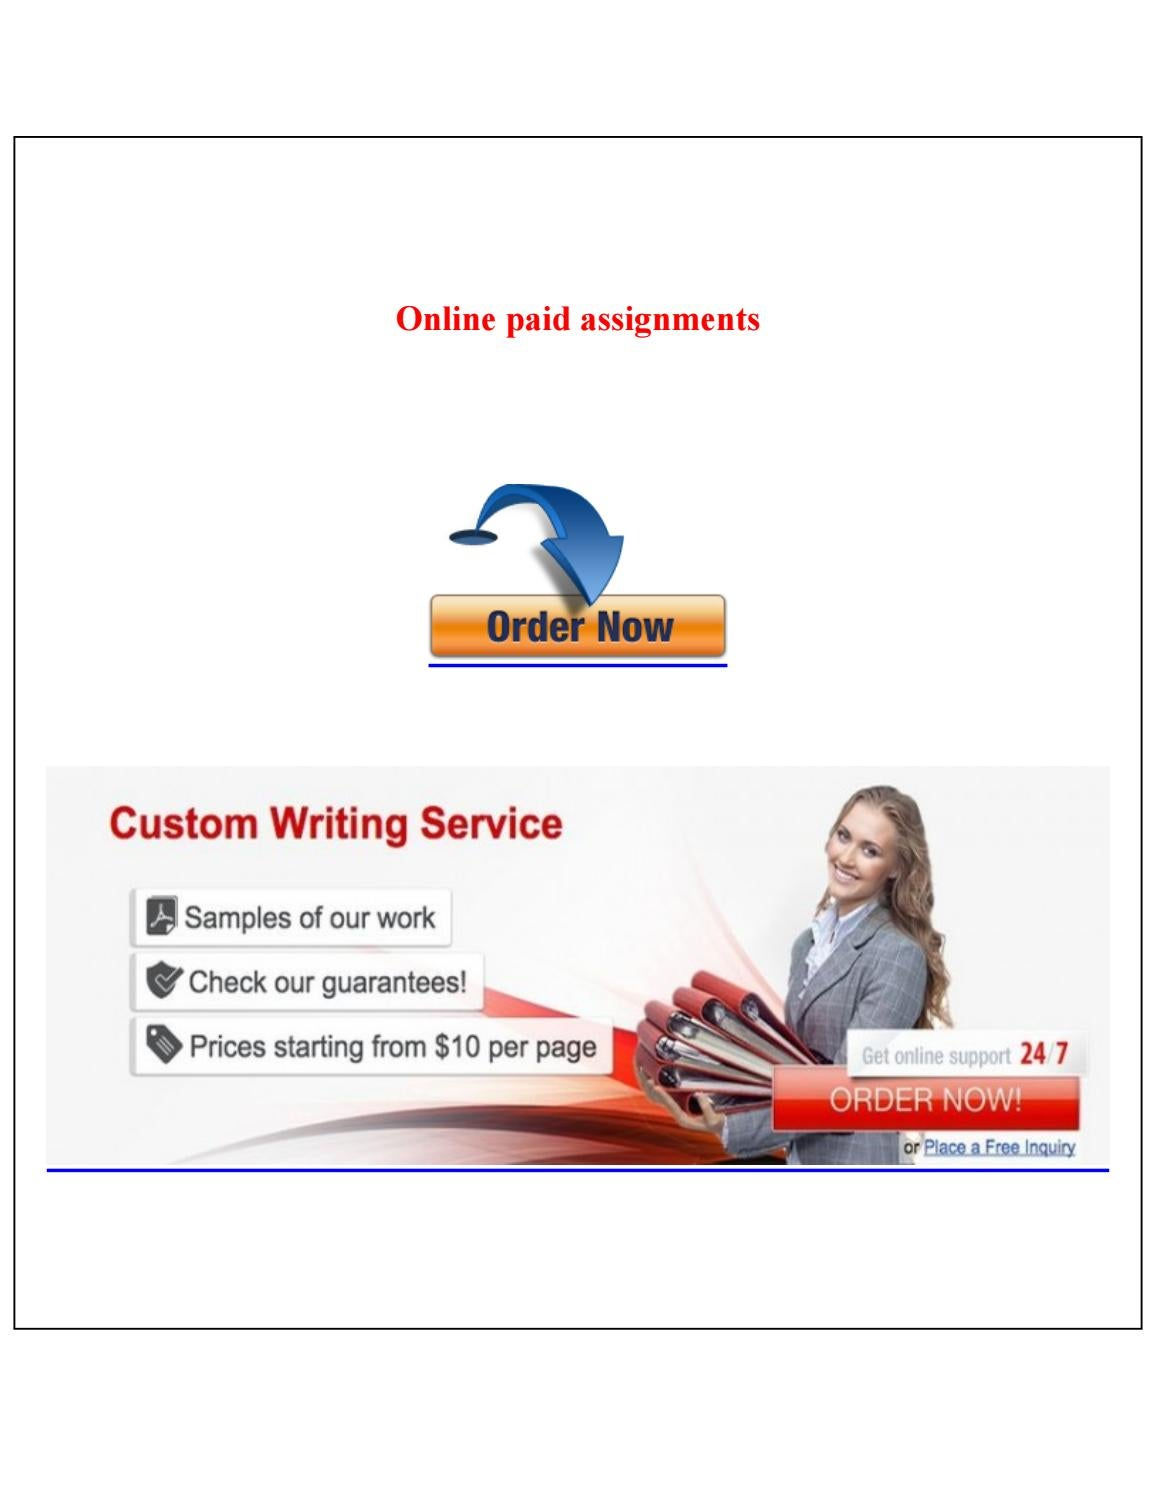 Online paid assignments